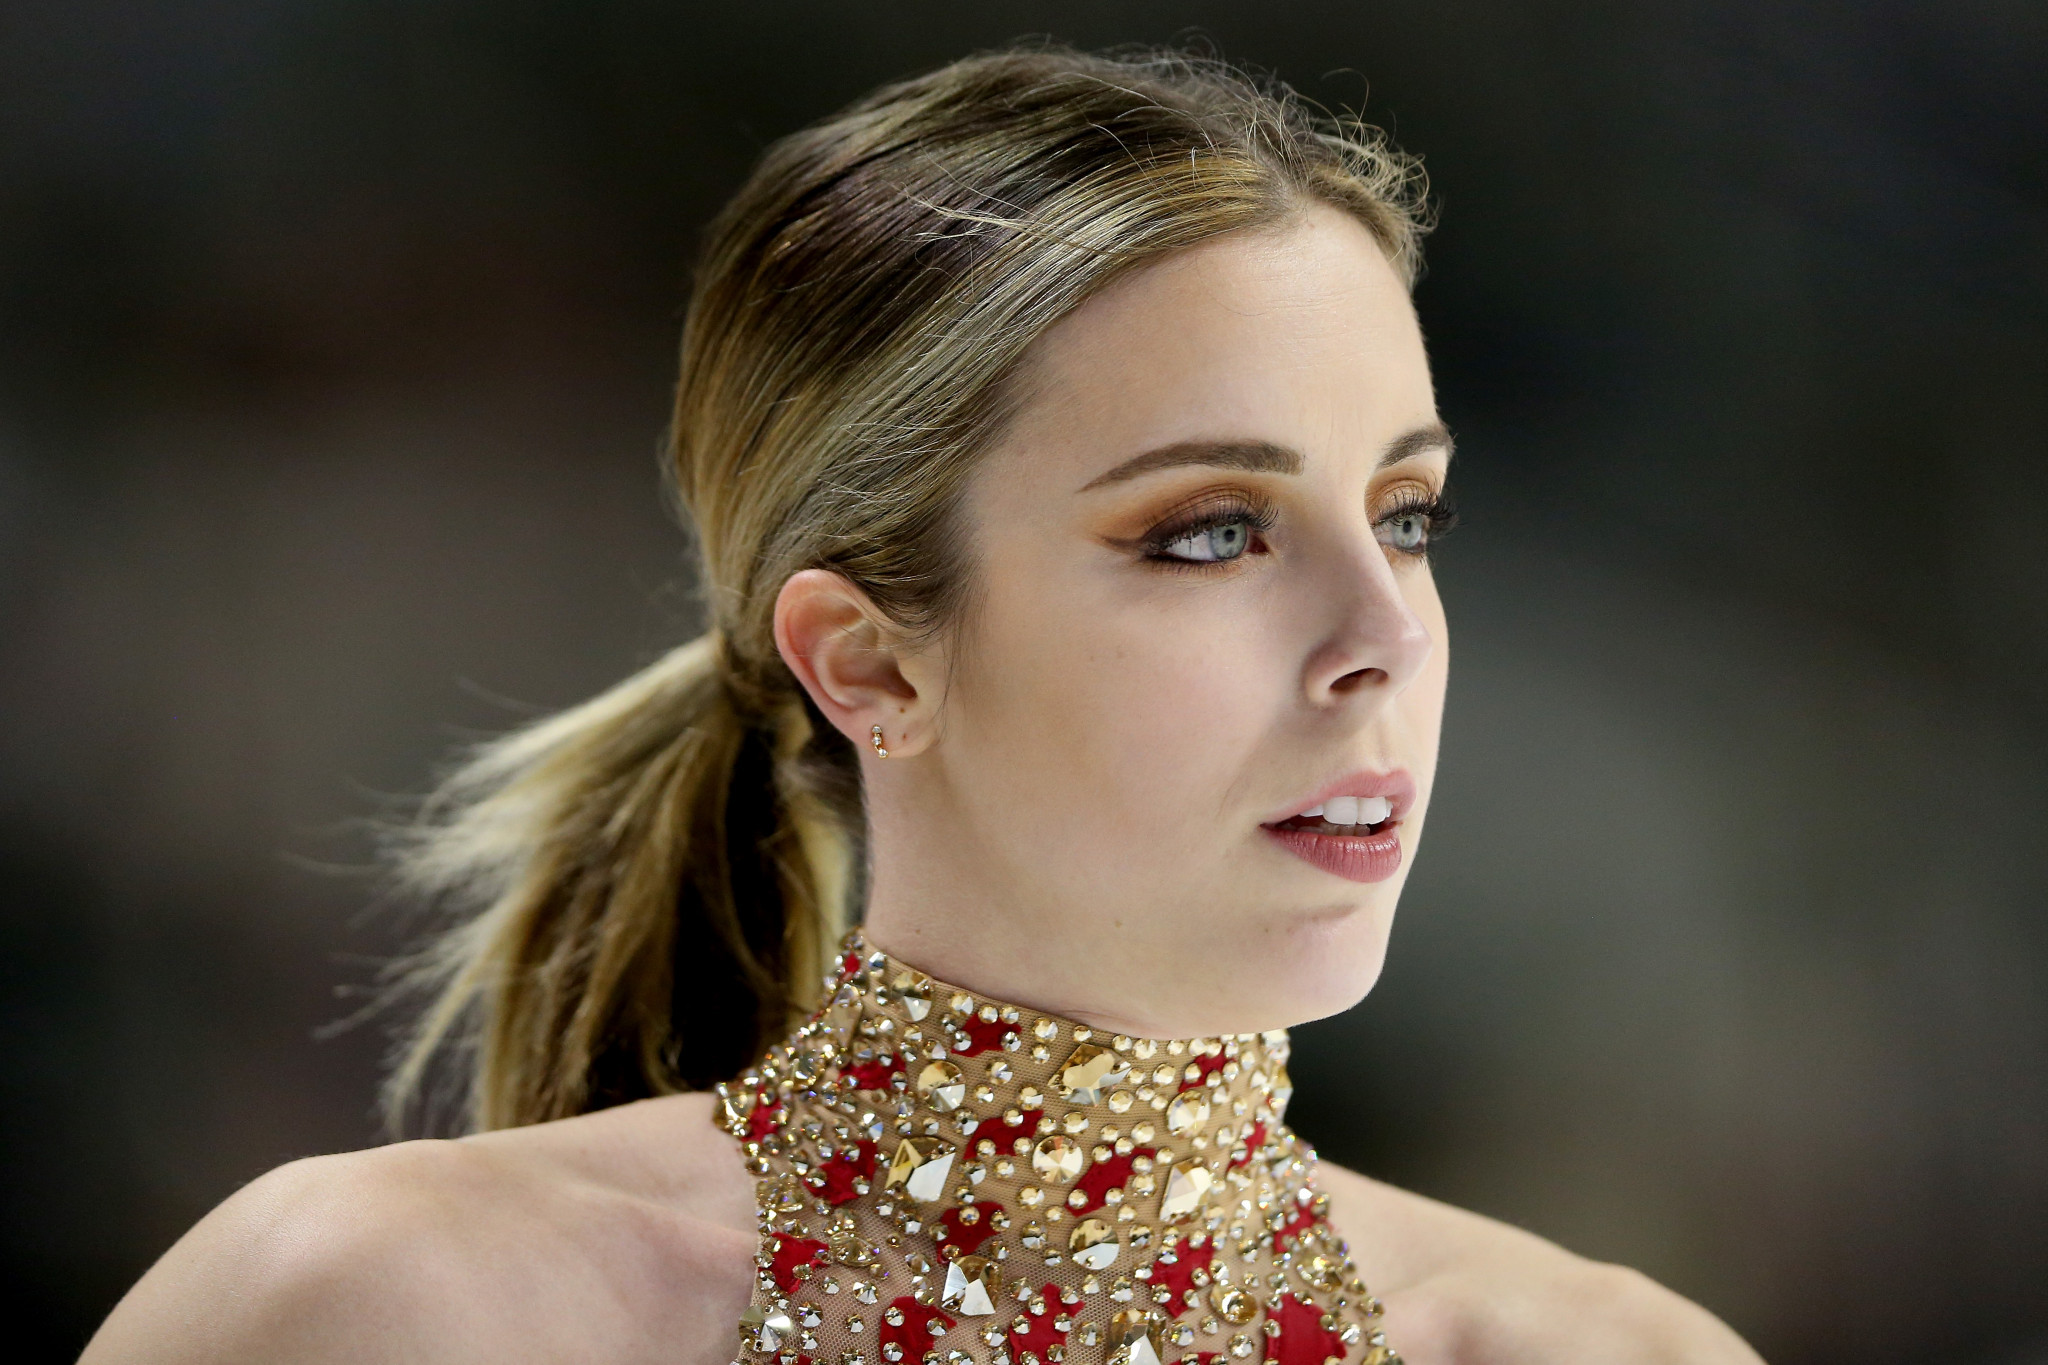 Ashley Wagner made the revelation in an article on USA Today ©Getty Images